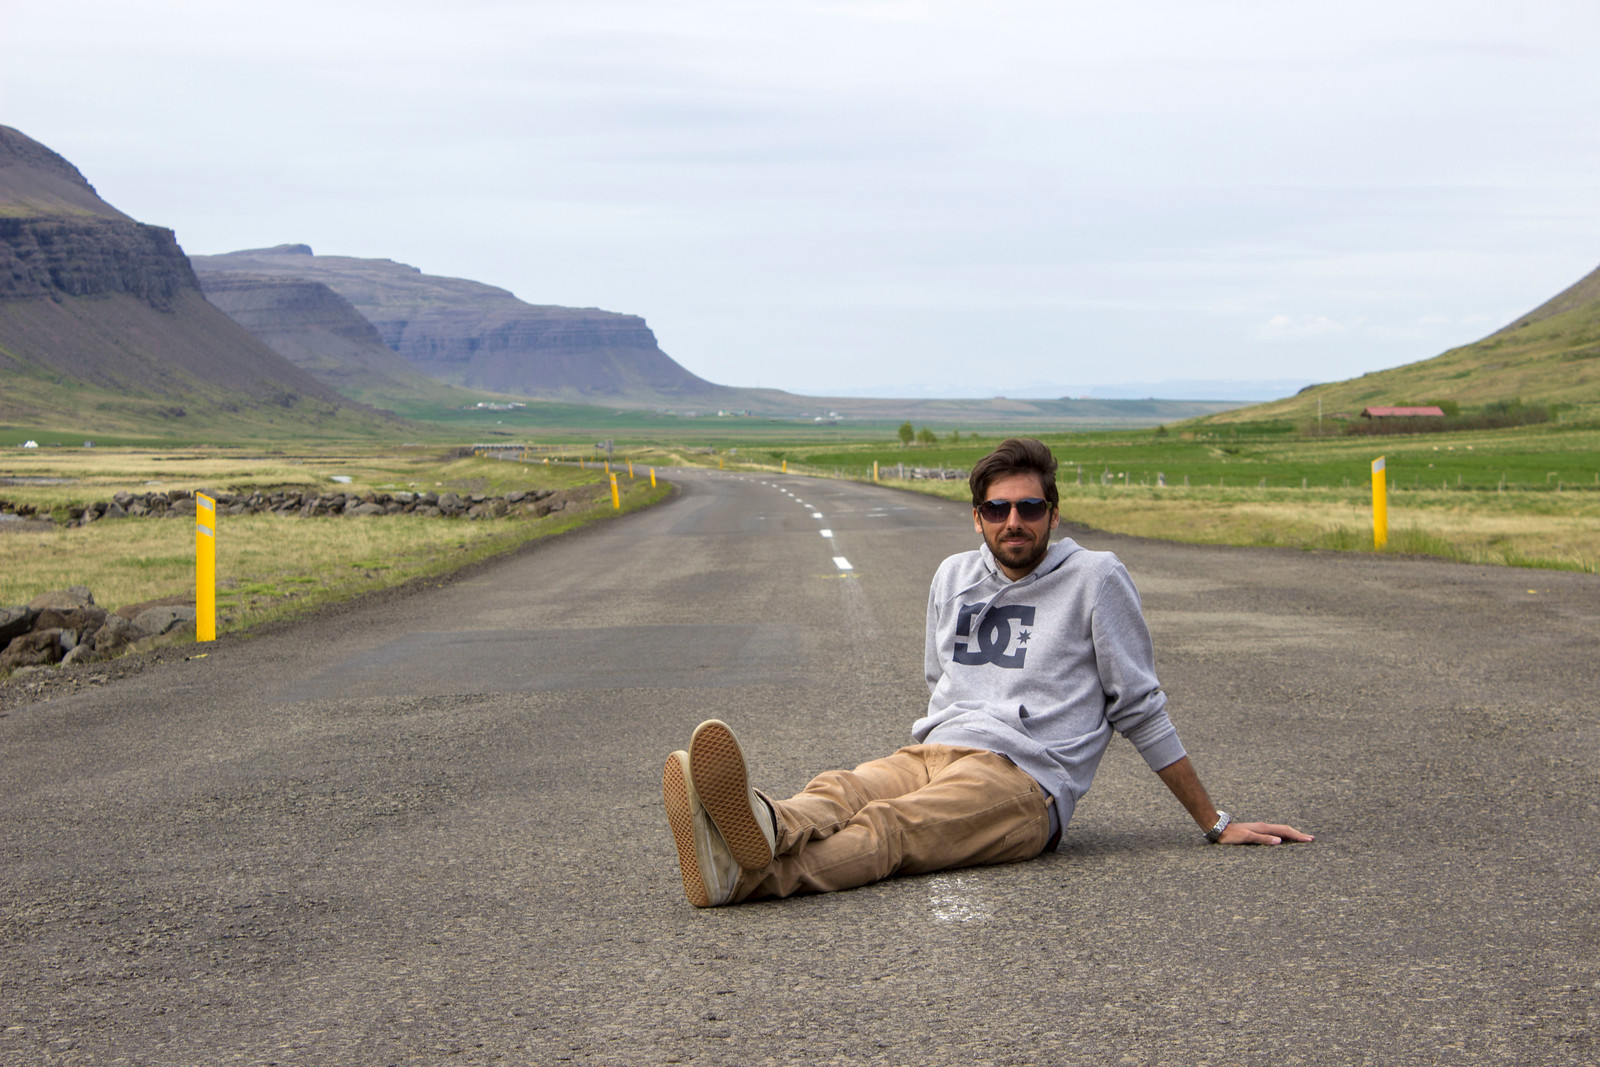 Sitting in the road in the Westfjords, Iceland. On the way to Latrabjarg.